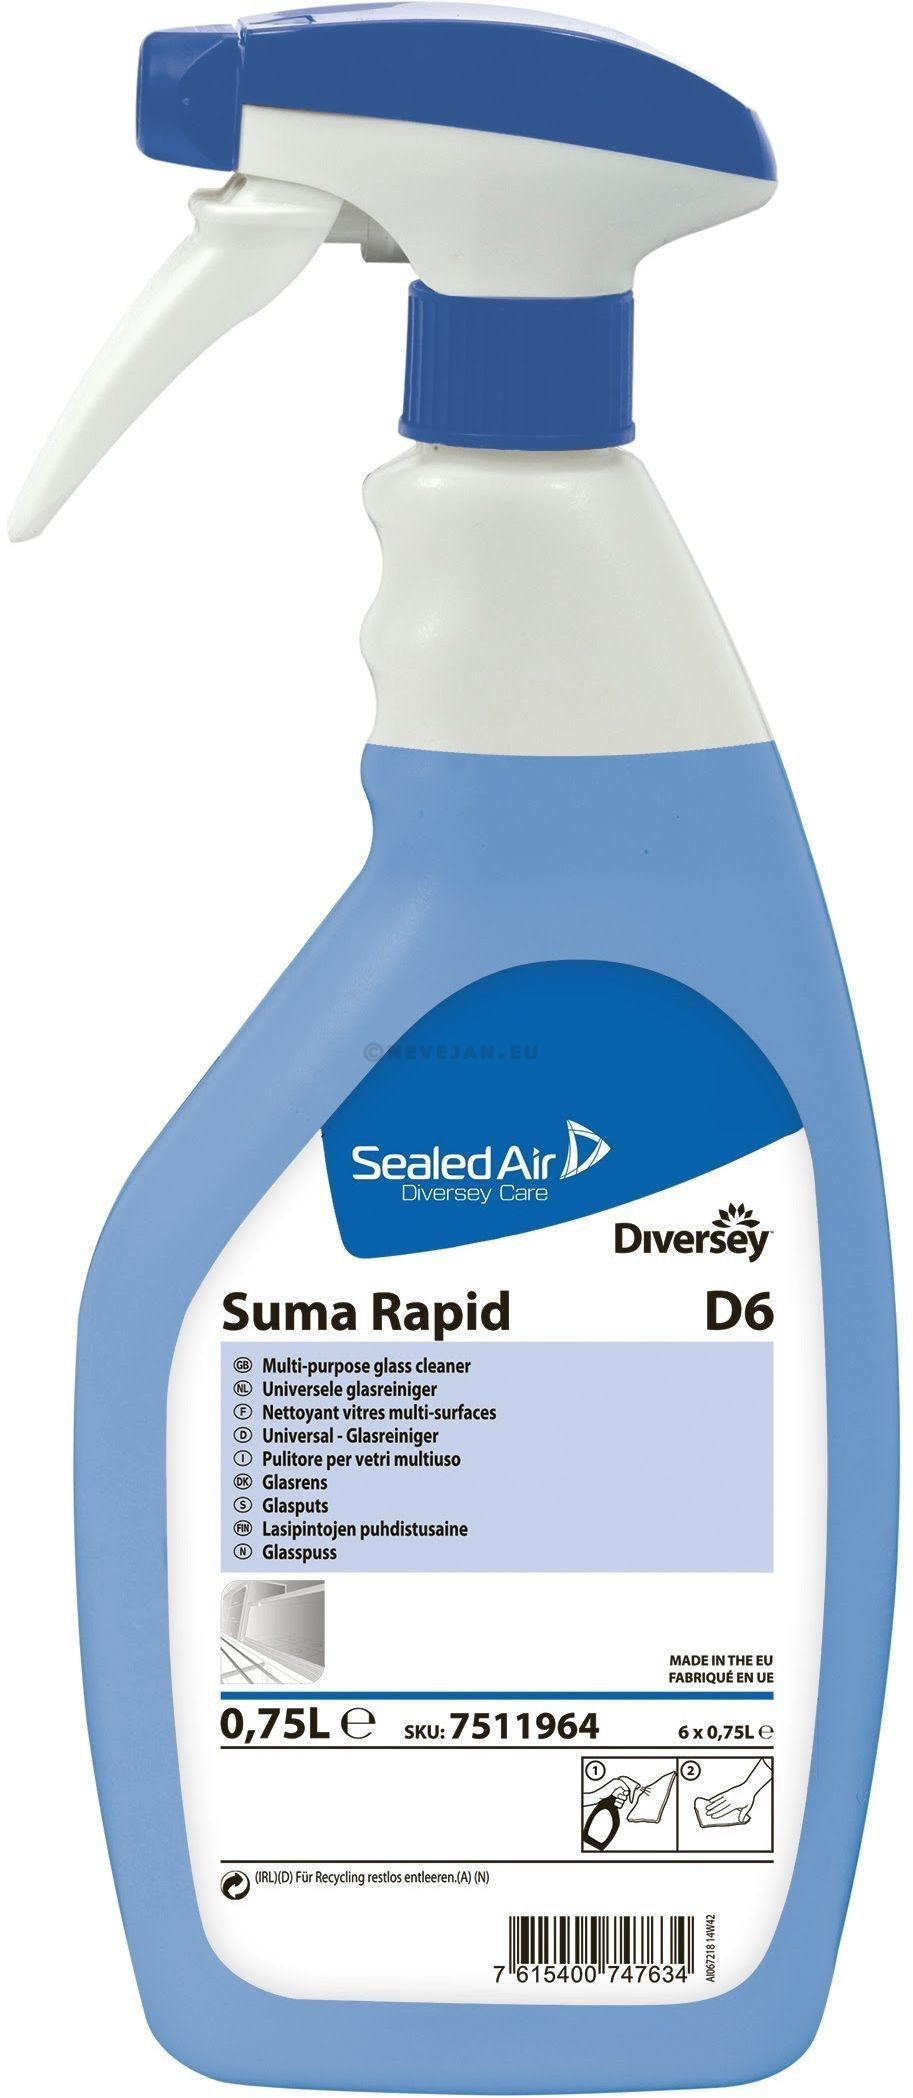 Suma Rapid D6 universele glasreiniger 750ml Diversey Sealed Air